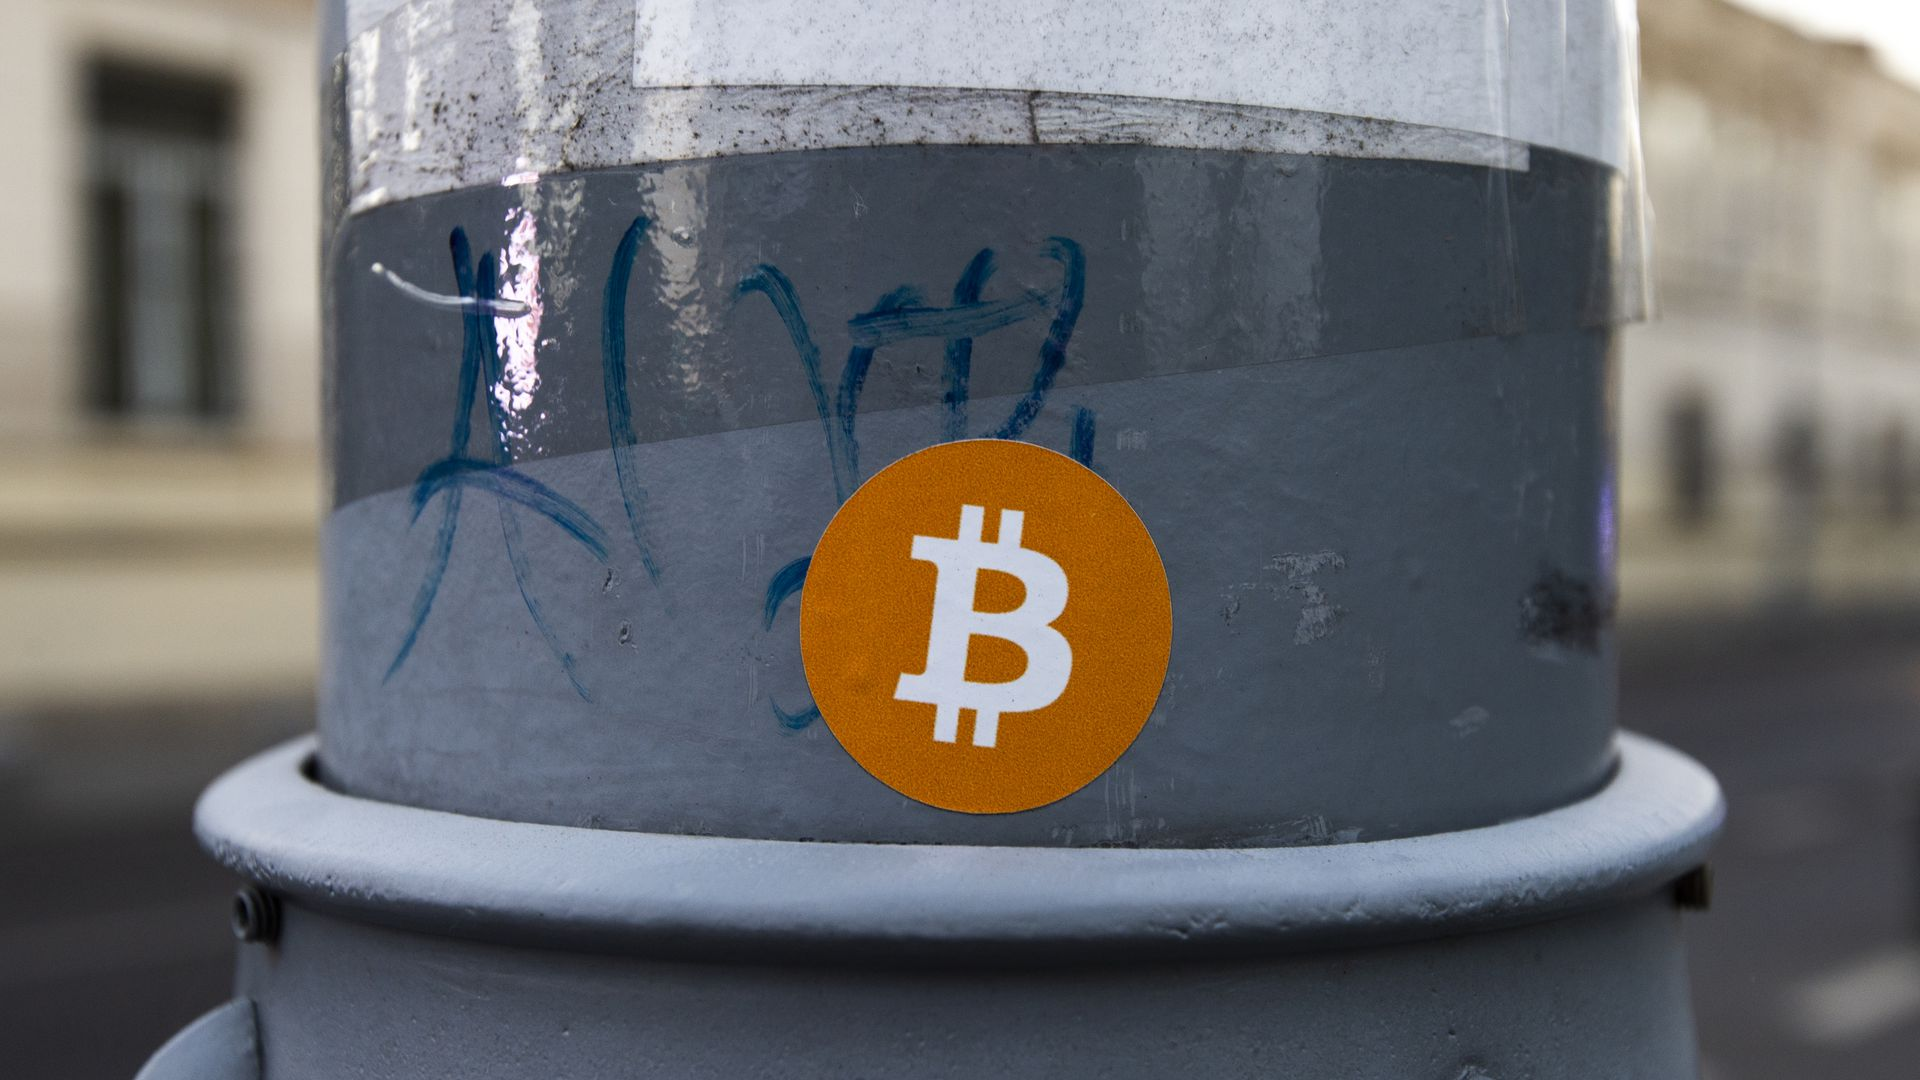 A sticker with the Bitcoin logo on it, on a lamp post.